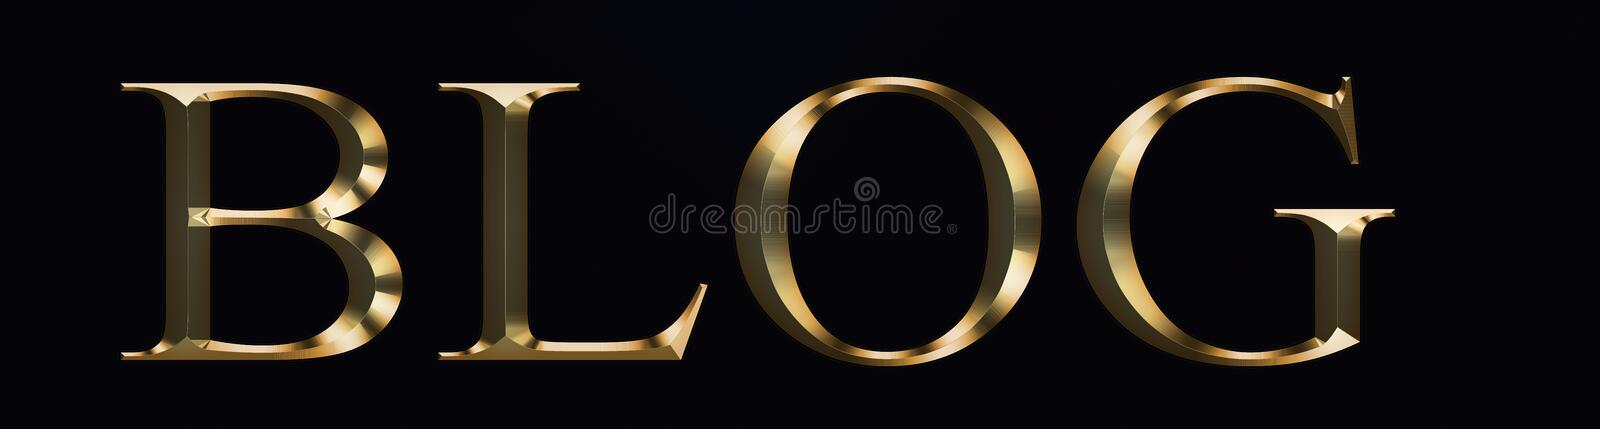 Blog text made from in gold on black background. Shiny festive party Gold font. royalty free stock image